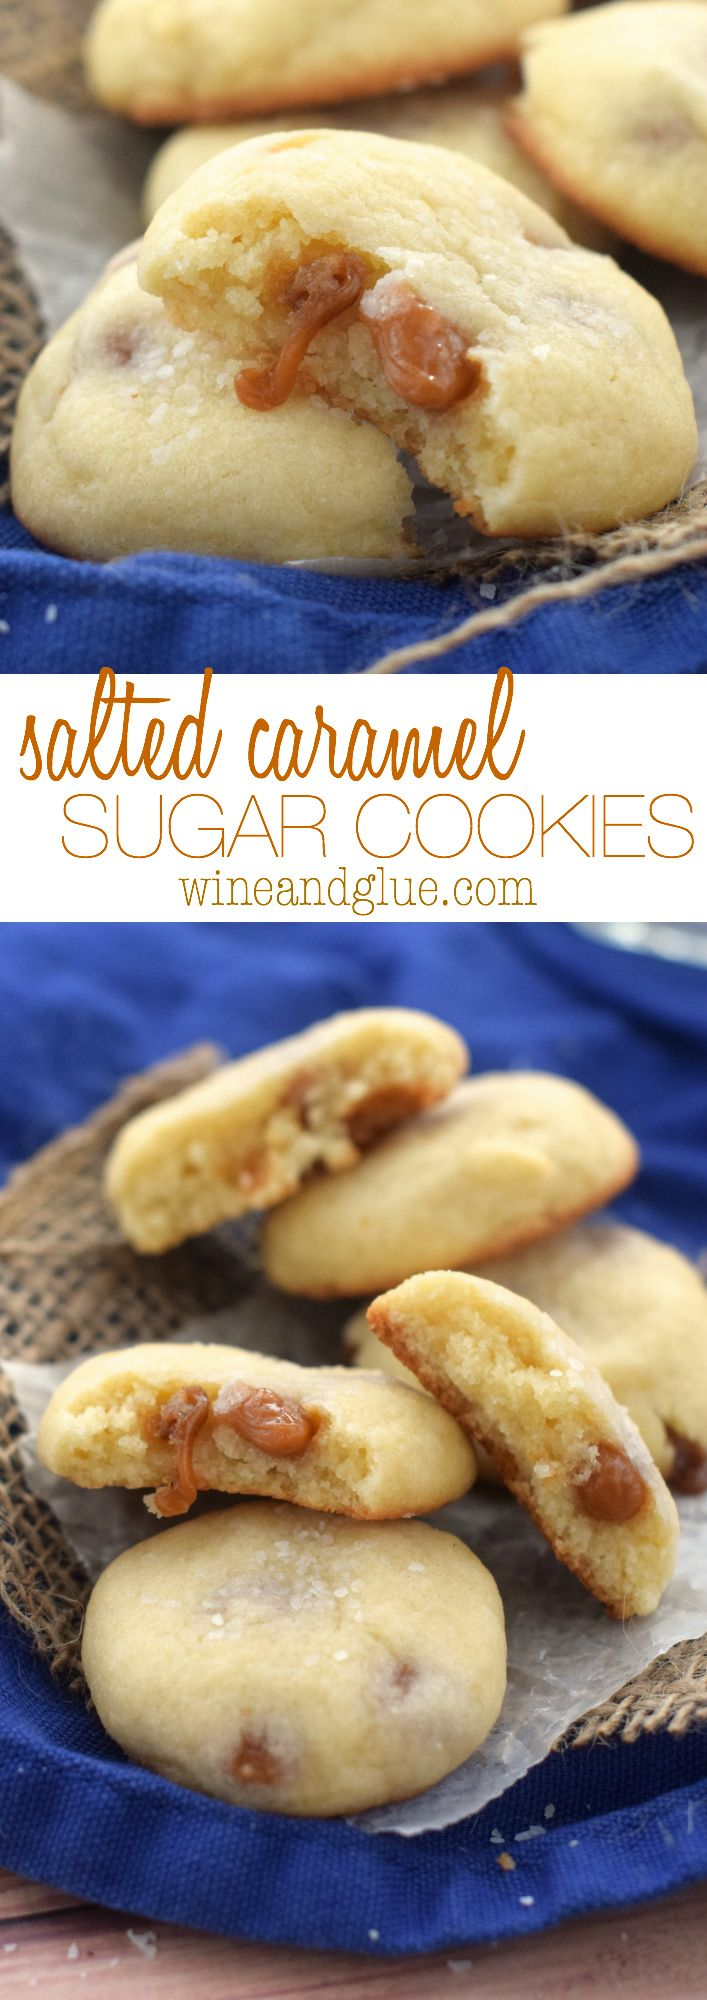 These Salted Caramel Sugar Cookies are AMAZING! Melt in your mouth delicious!